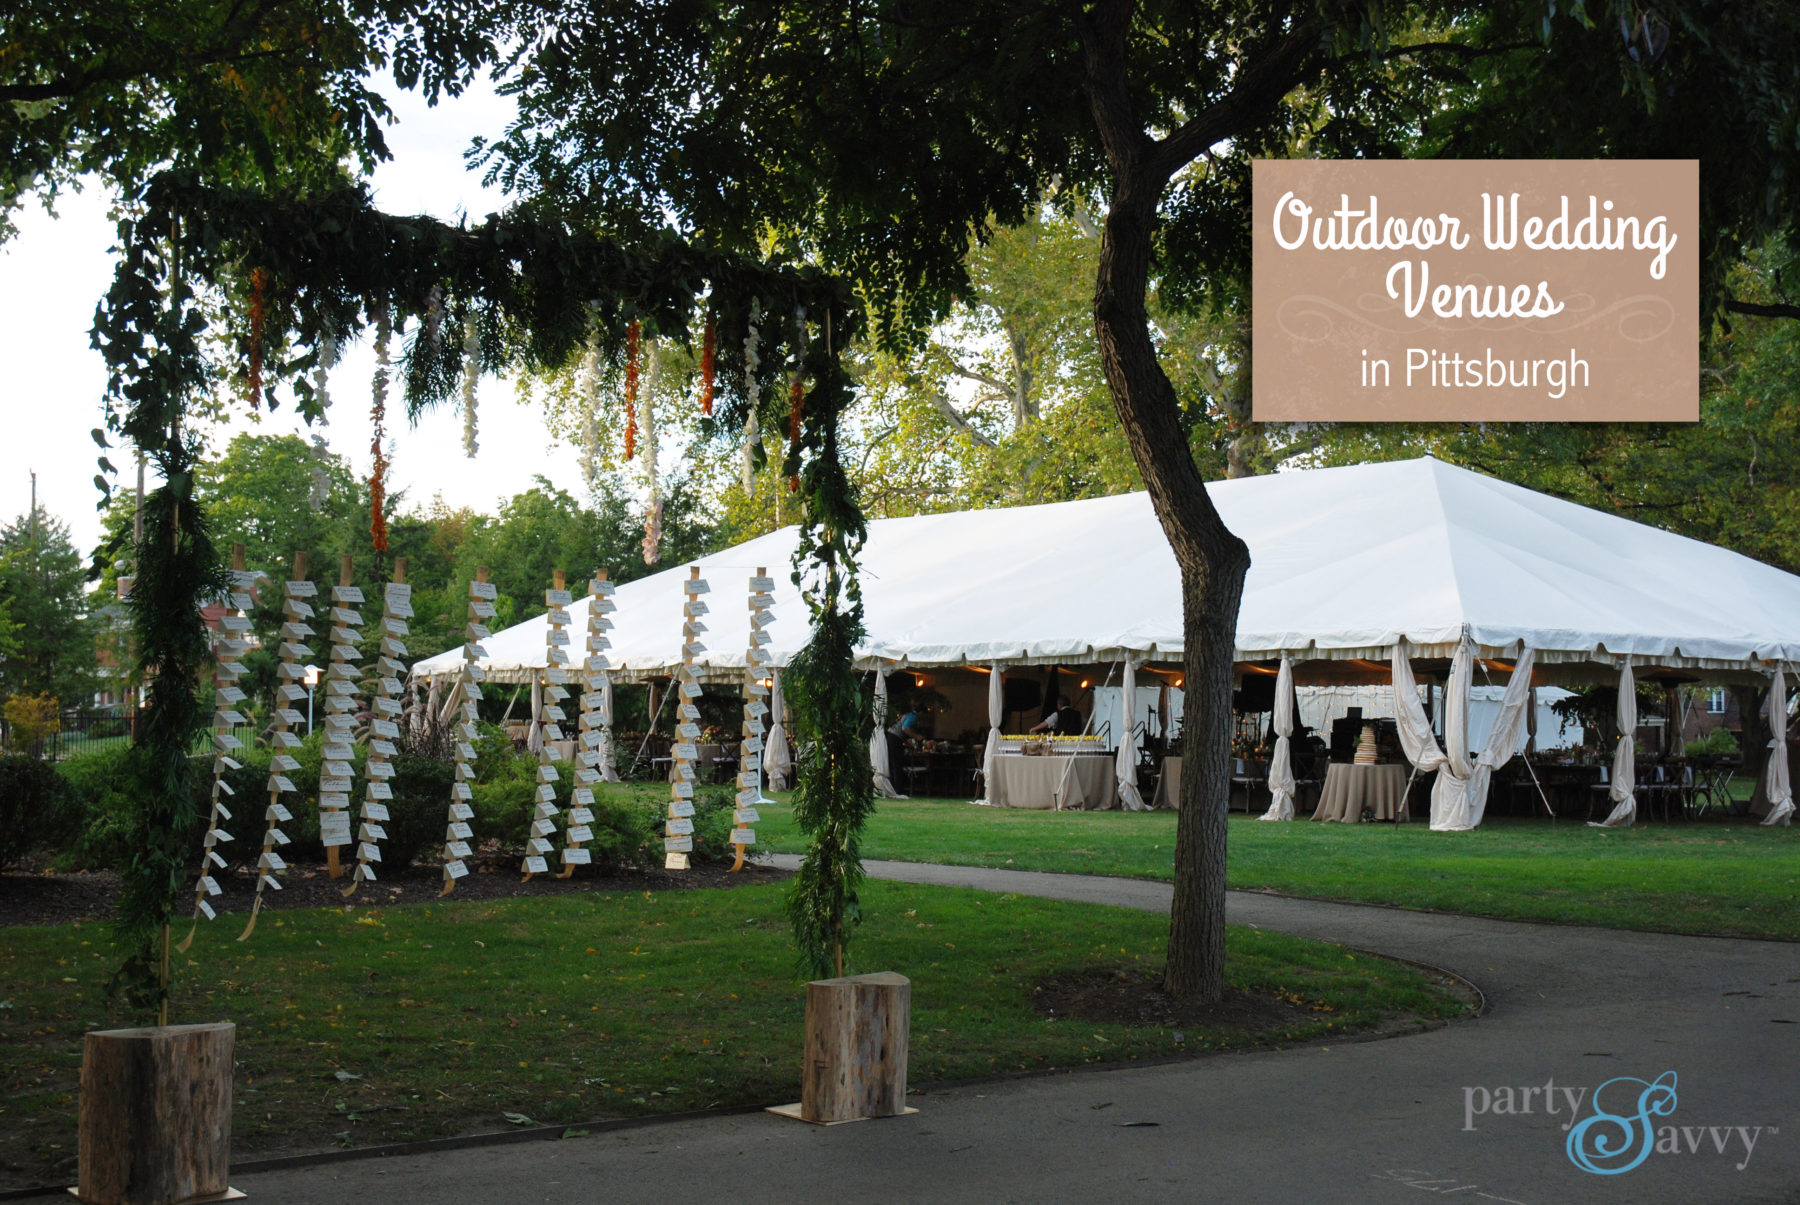 Outdoor wedding venues in Pittsburgh